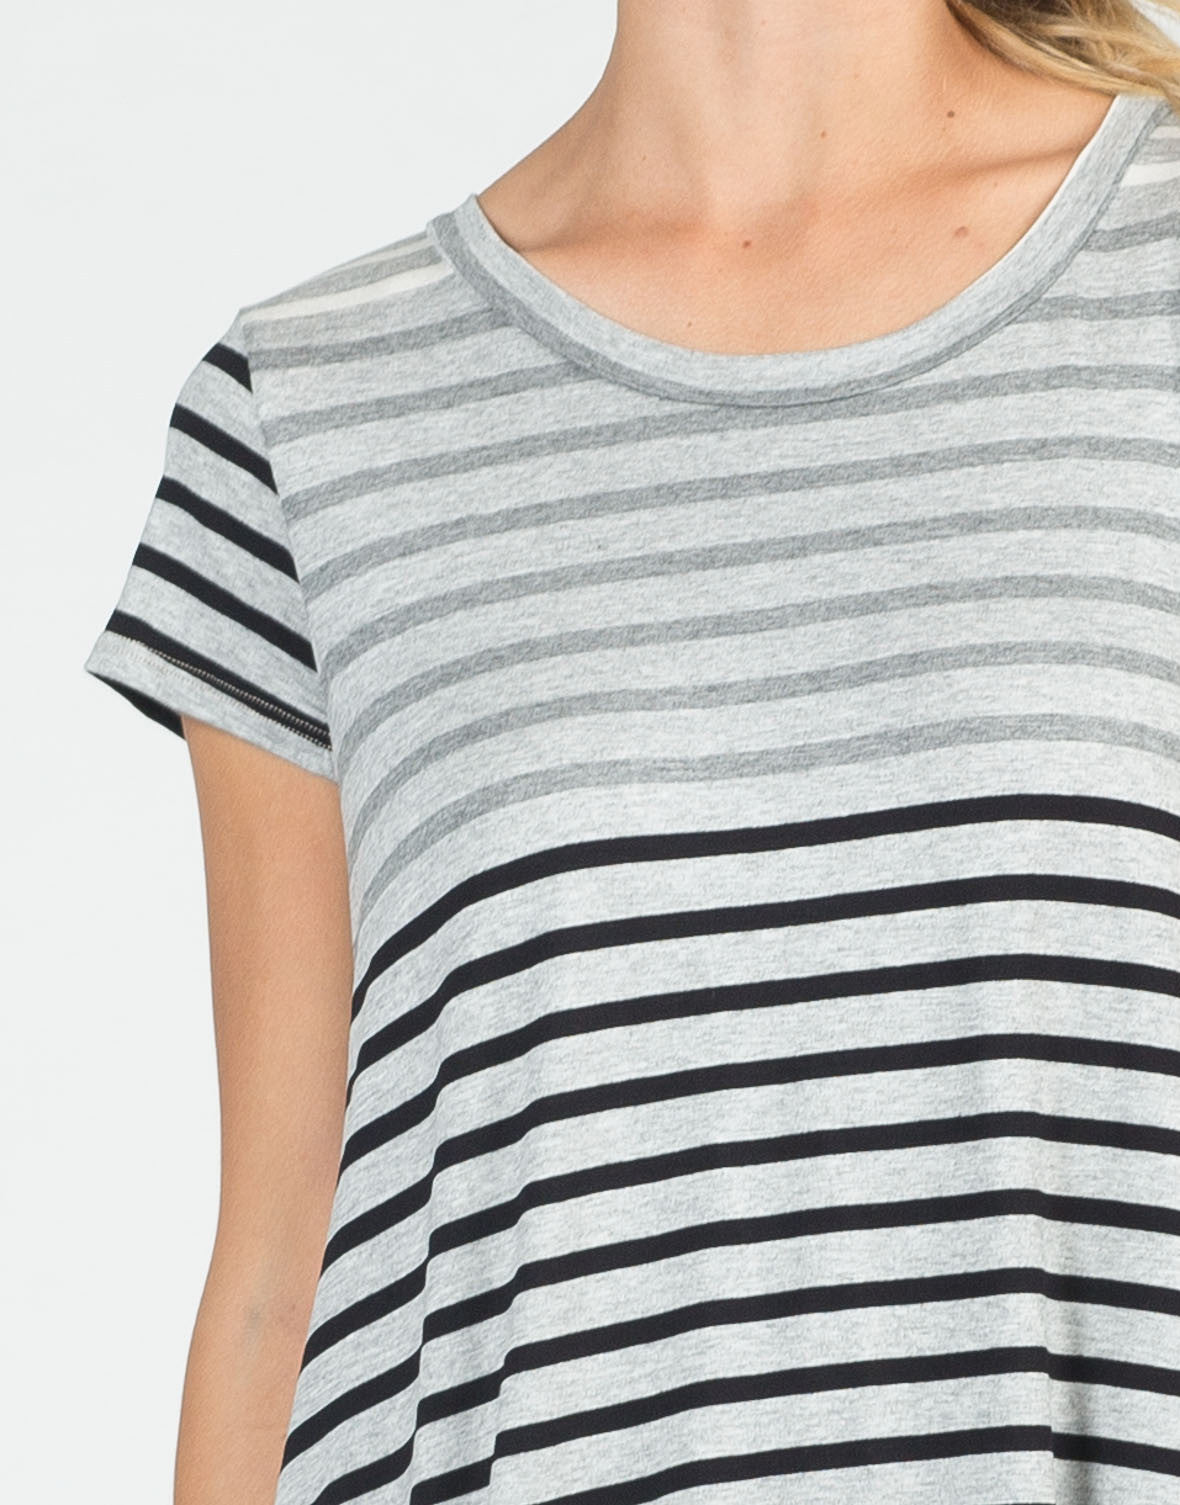 Detail of Color Contrast Striped Dress